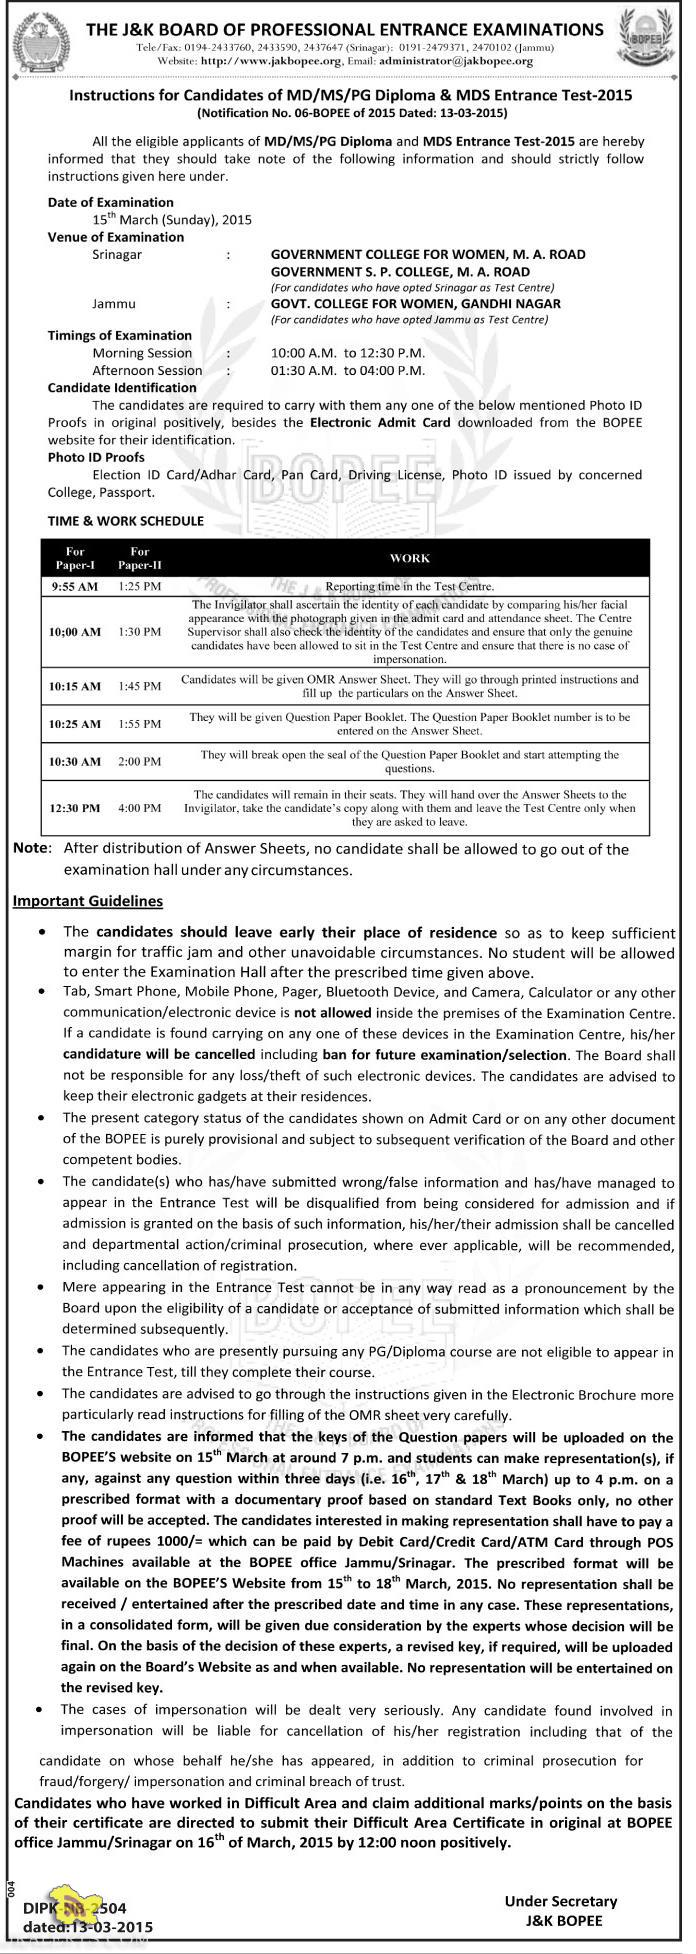 Instructions for Candidates of MD/MS/PG Diploma & MDS Entrance Test-2015